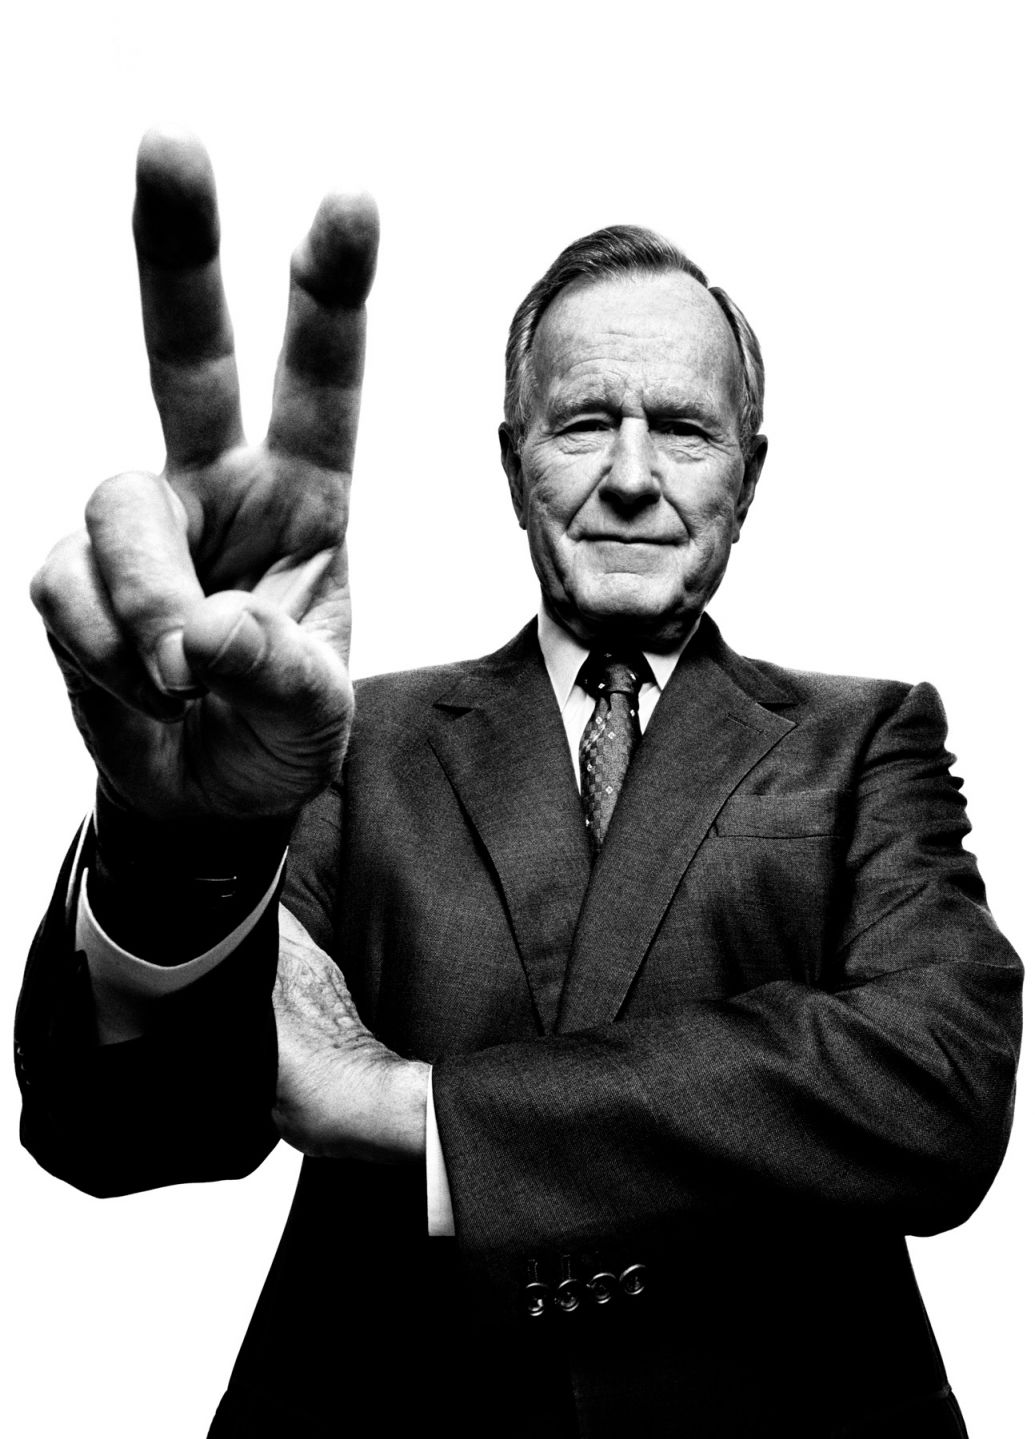 George H.W. Bush portrait photography